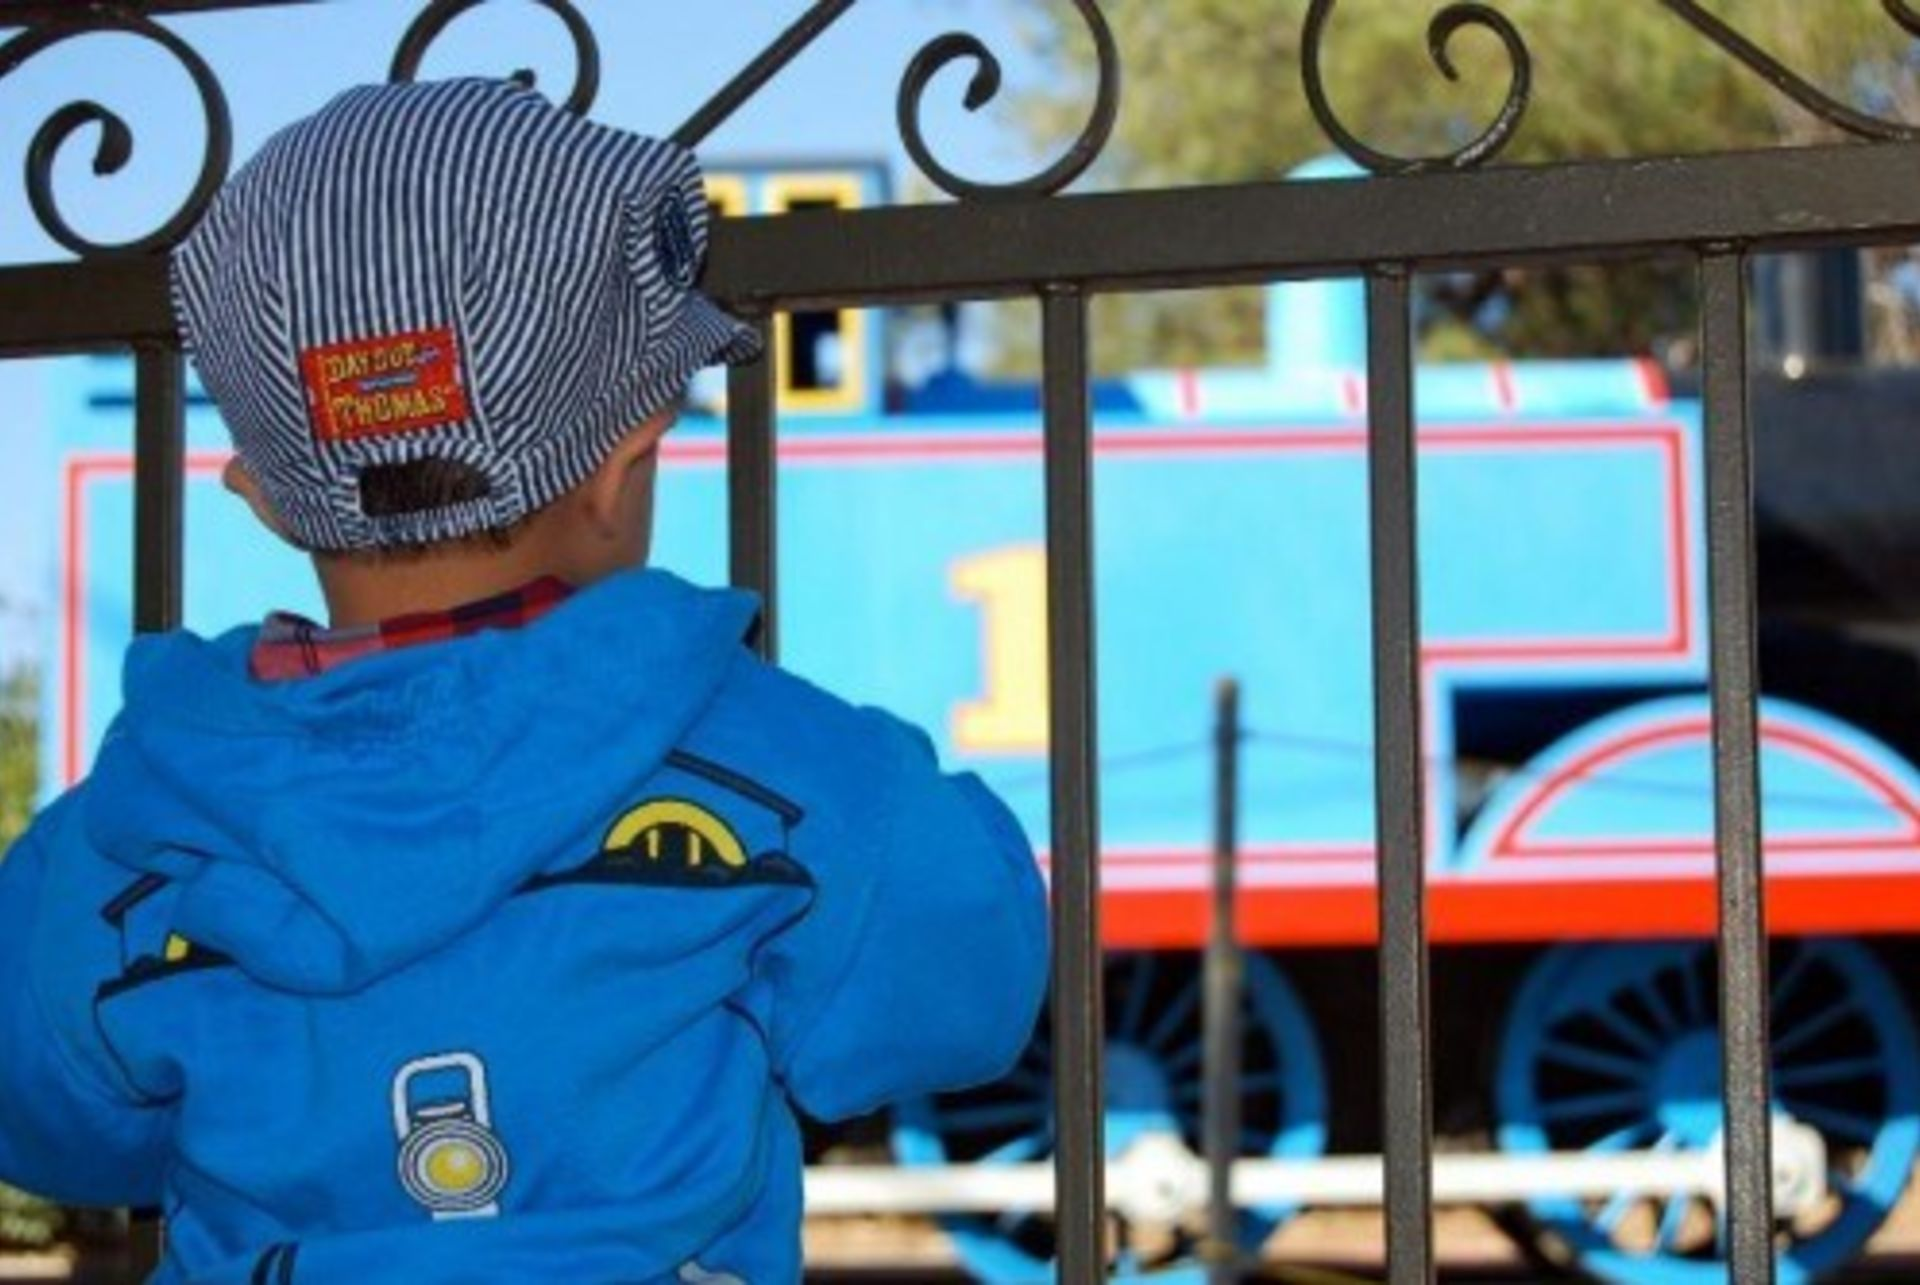 Thomas the Train – This Weekend in Green Bay